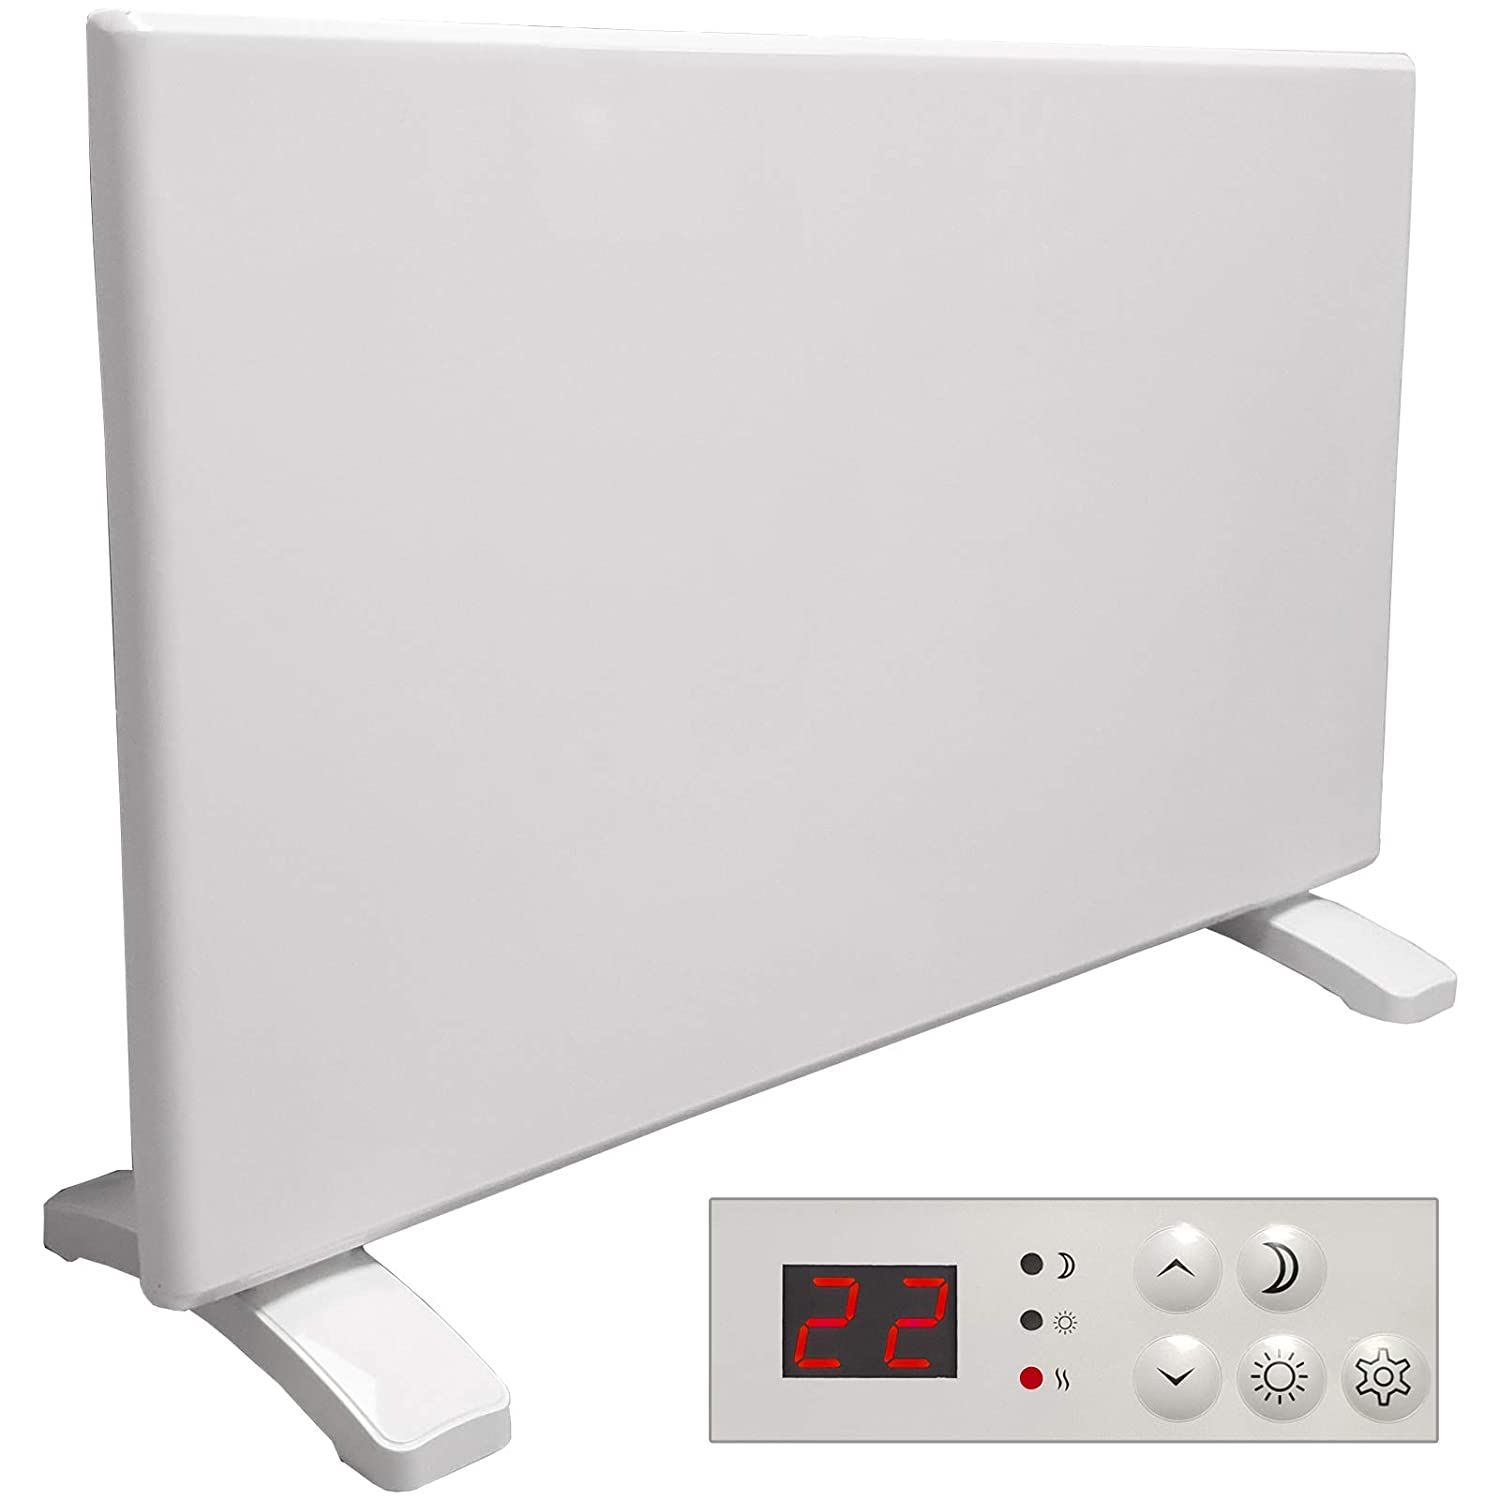 Futura Eco 1000W Electric Panel Electric Heater Bathroom Setback Timer & Advanced Thermostat Control Wall Mounted or Floor Standing Low Energy Electric Heater